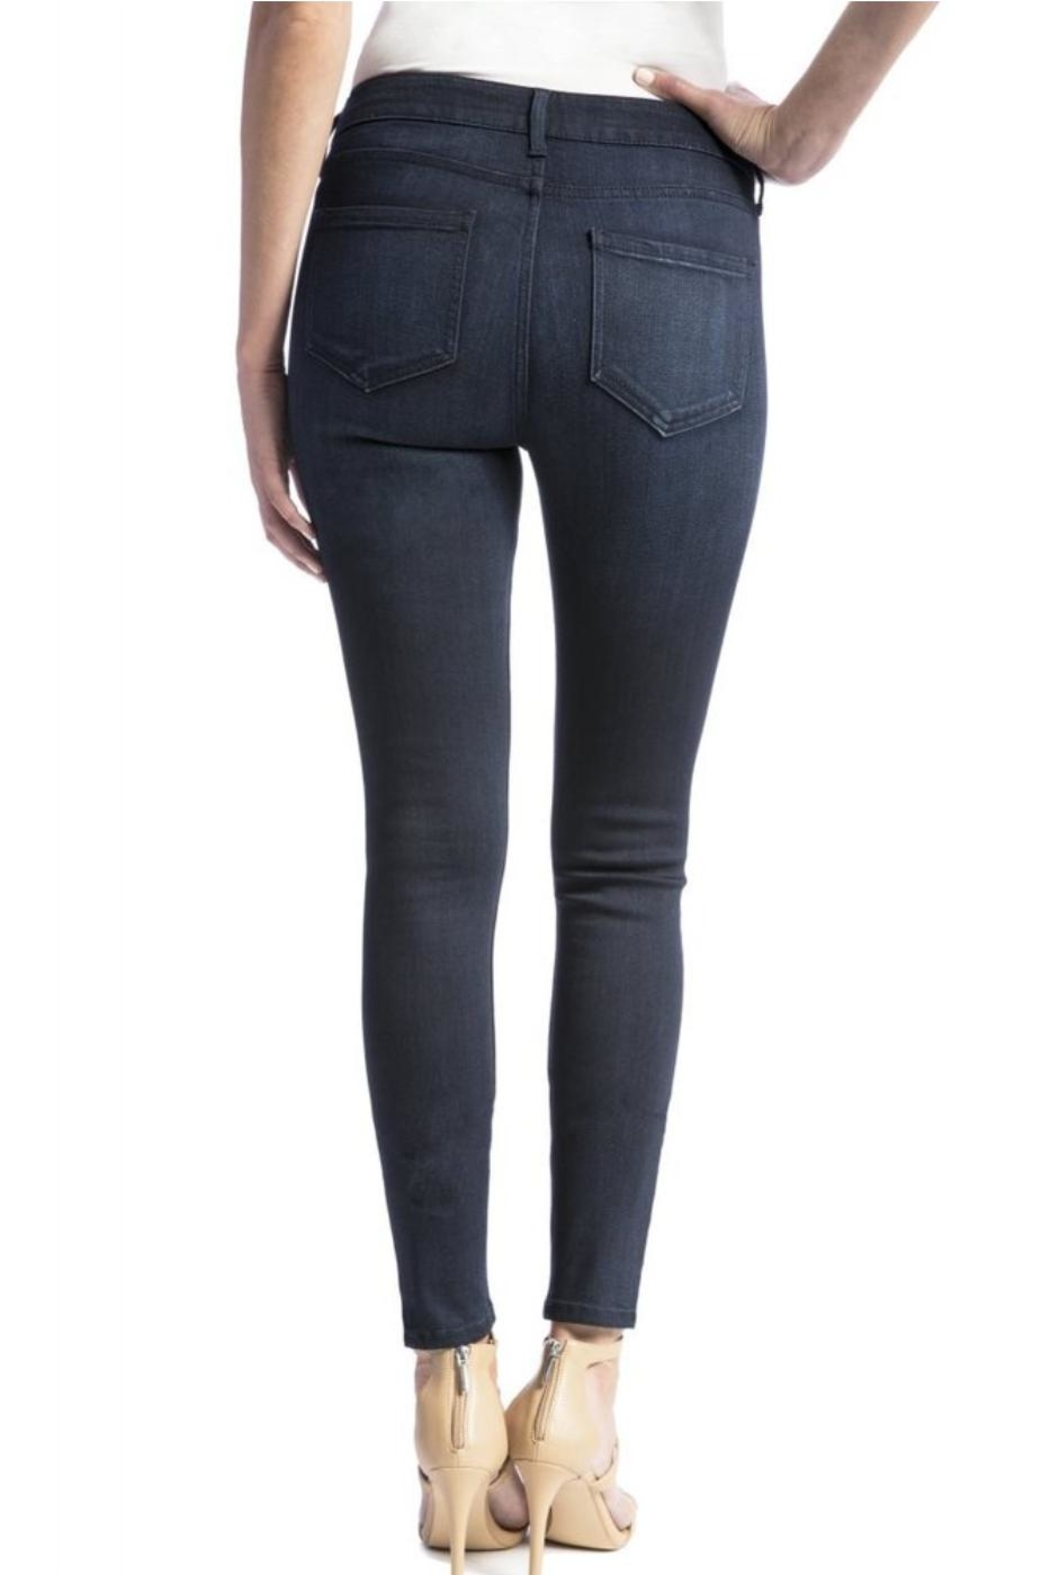 Liverpool Abby Skinny Jeans - Side Cropped Image